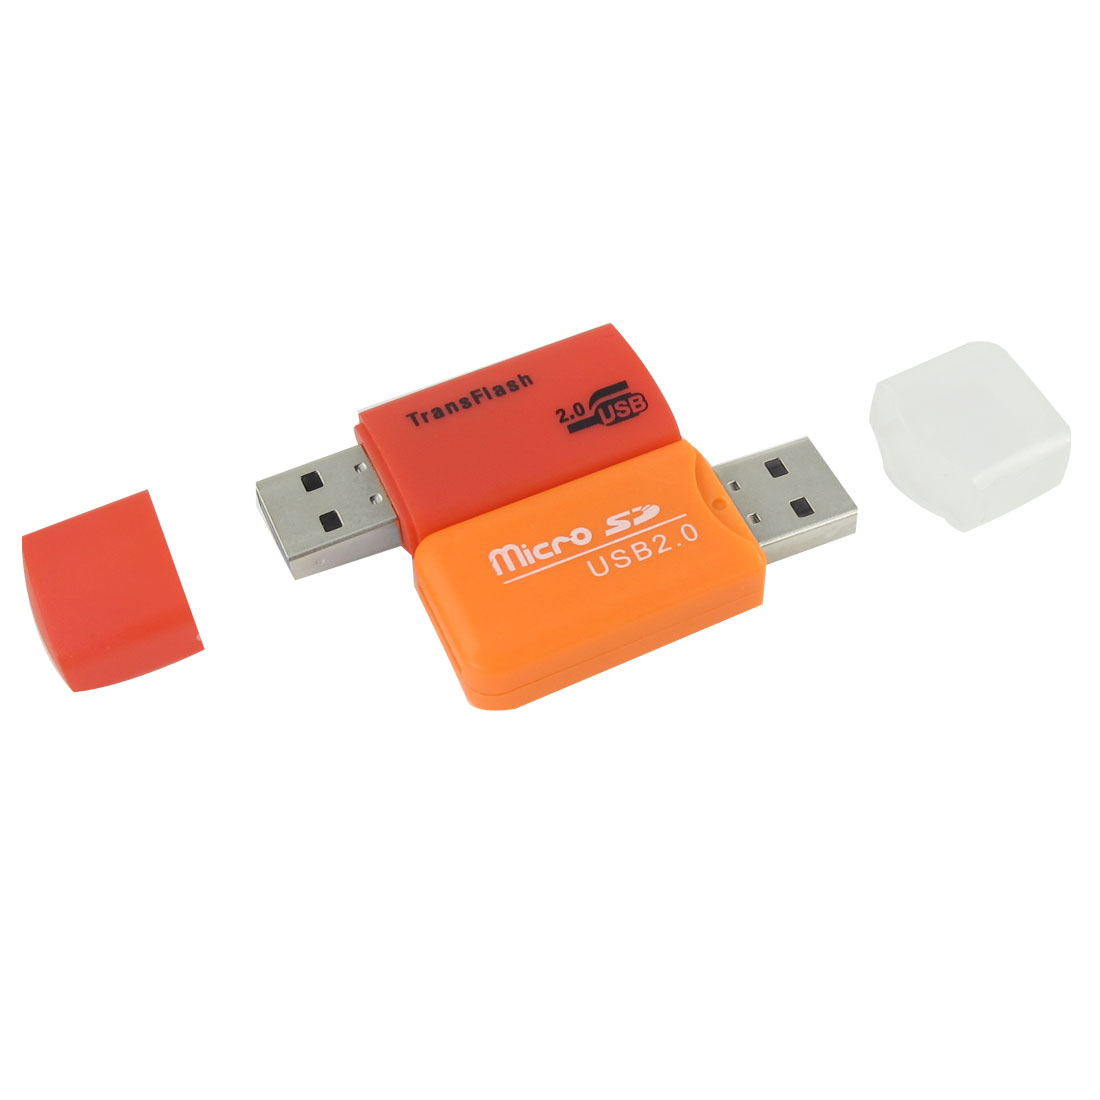 2 Pcs Orange Red Clear Plastic Houseing USB 2.0 TF Transflash Micro SD Memory Card Reader